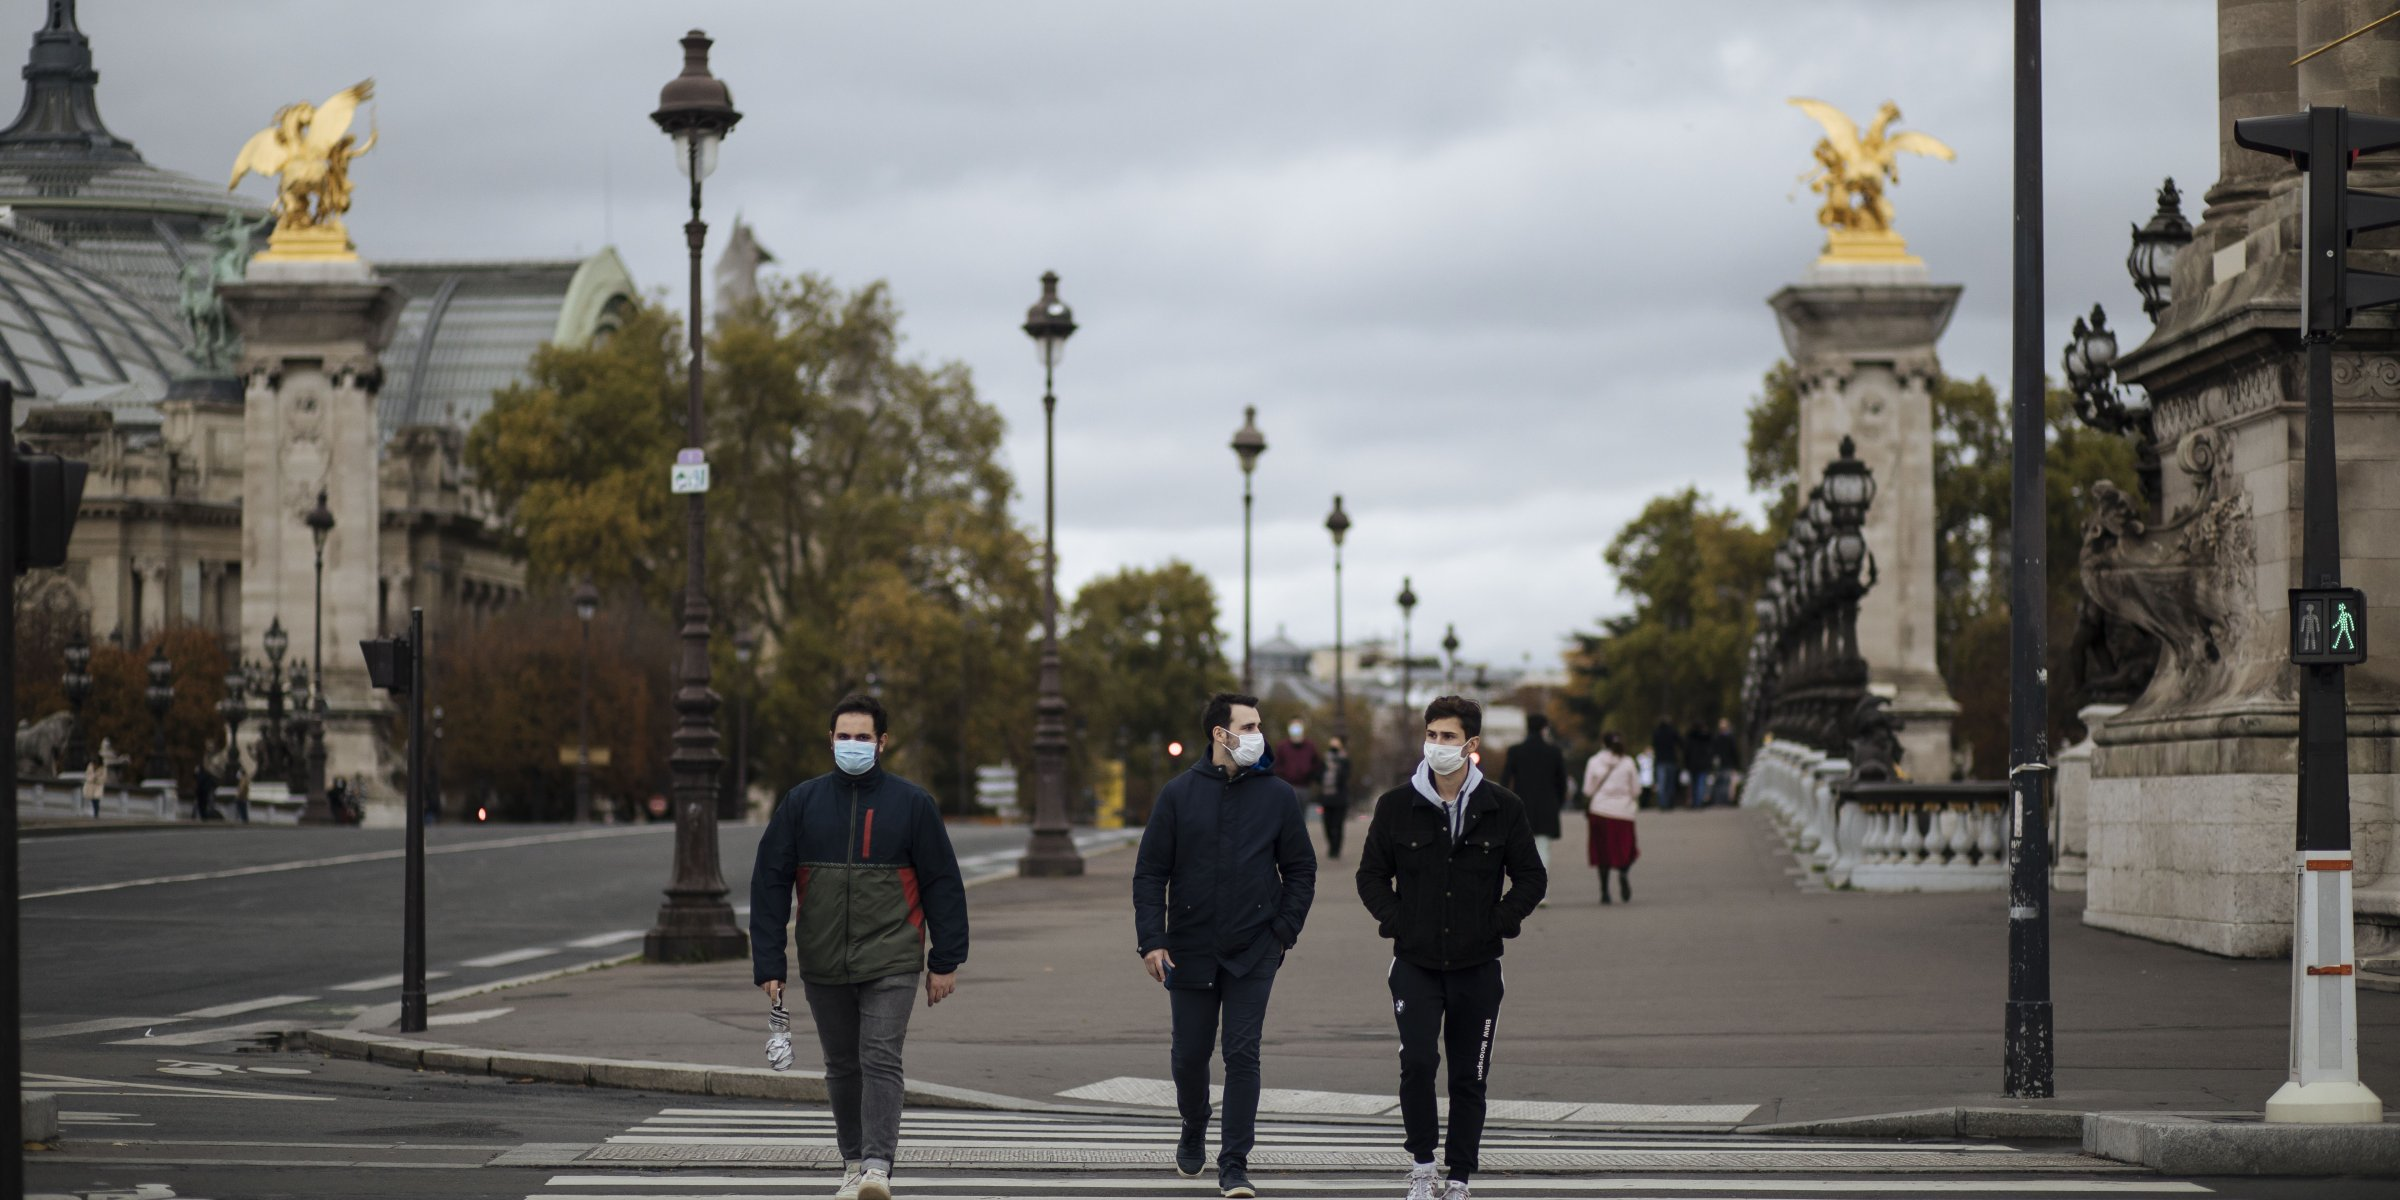 France's daily COVID-19 cases expected to hit 100,000